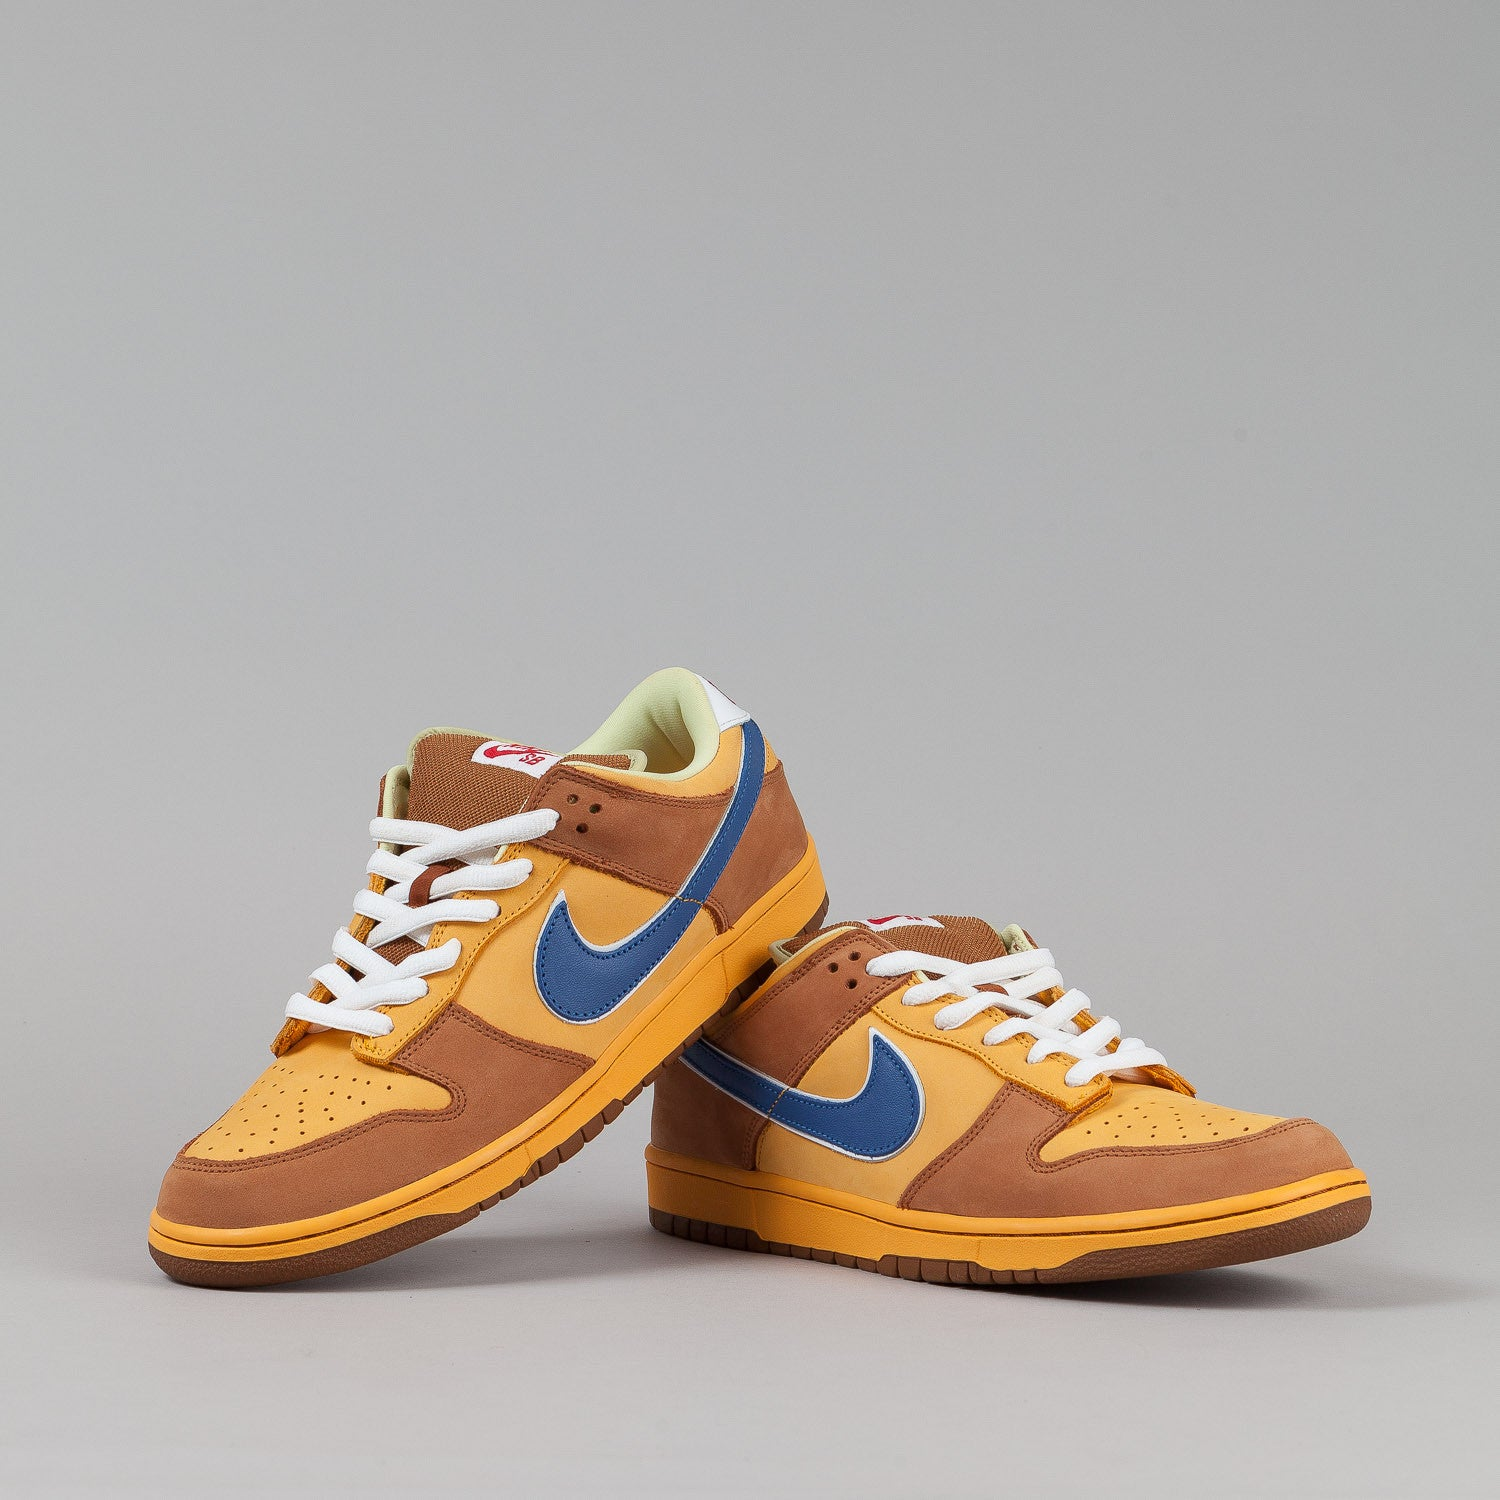 Nike SB Dunk Low Premium Shoes - Gold / Atlantic Blue